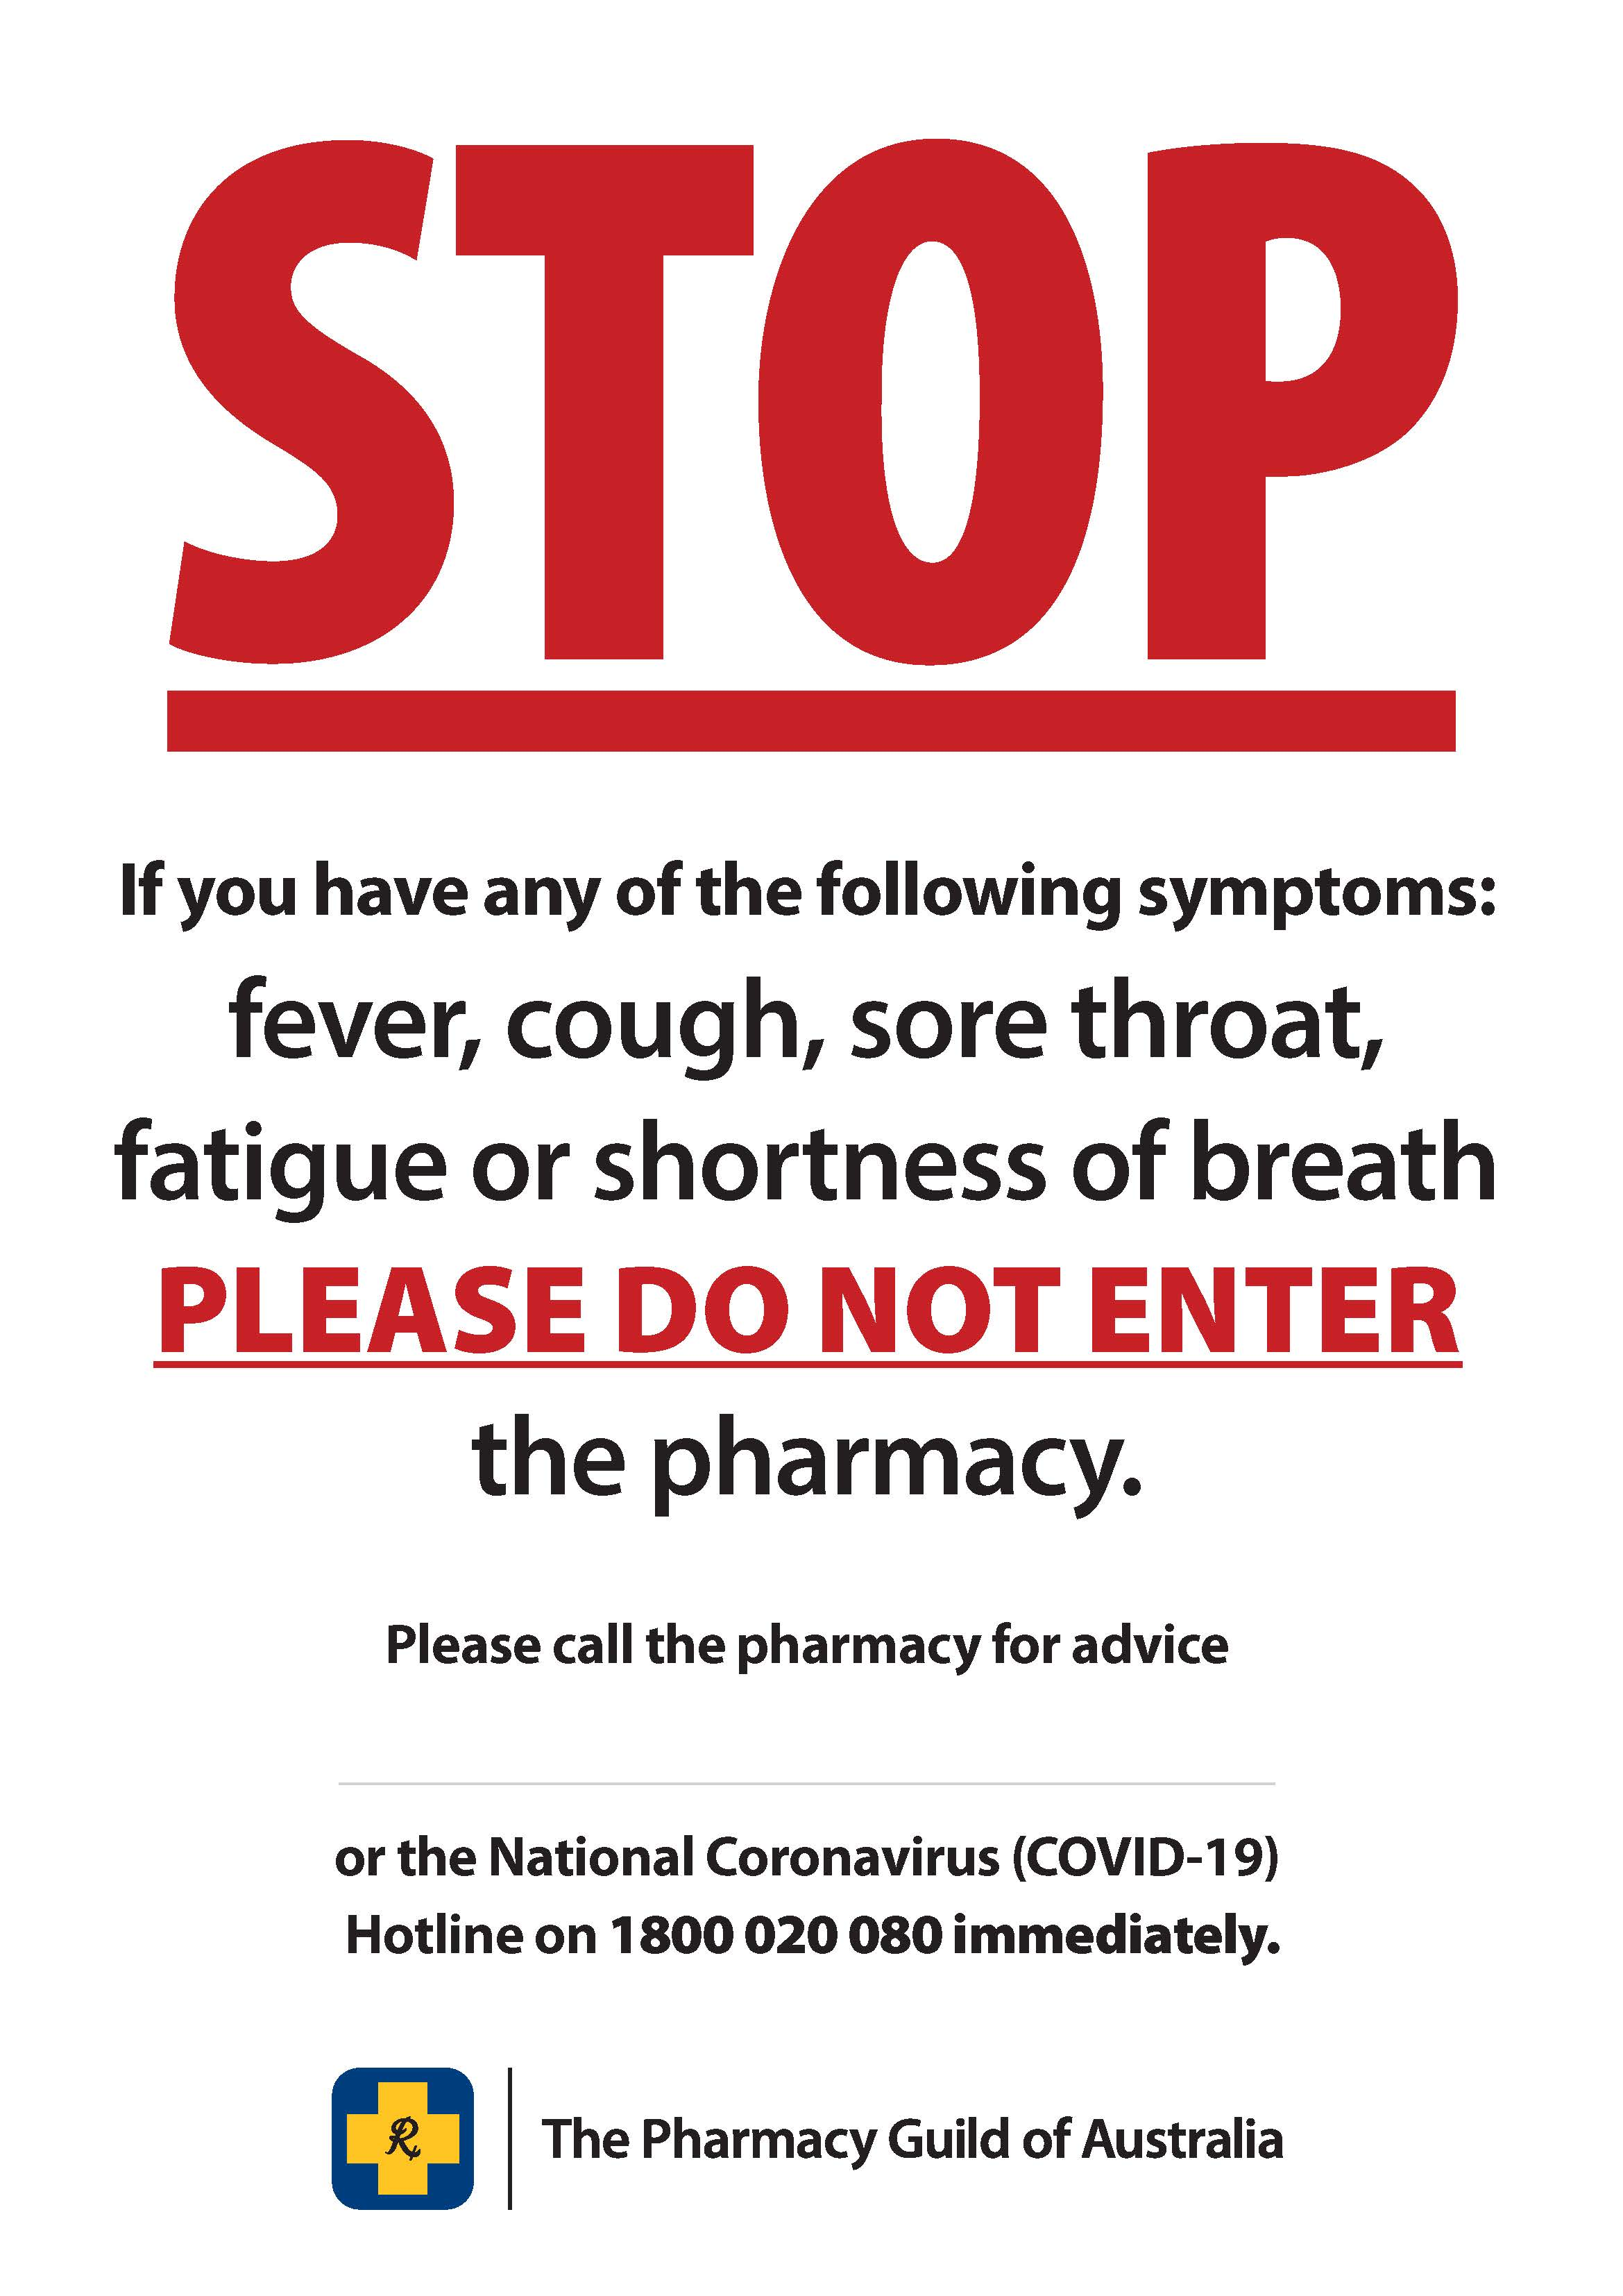 COVID-19 Poster 4 - Call the pharmacy for advice